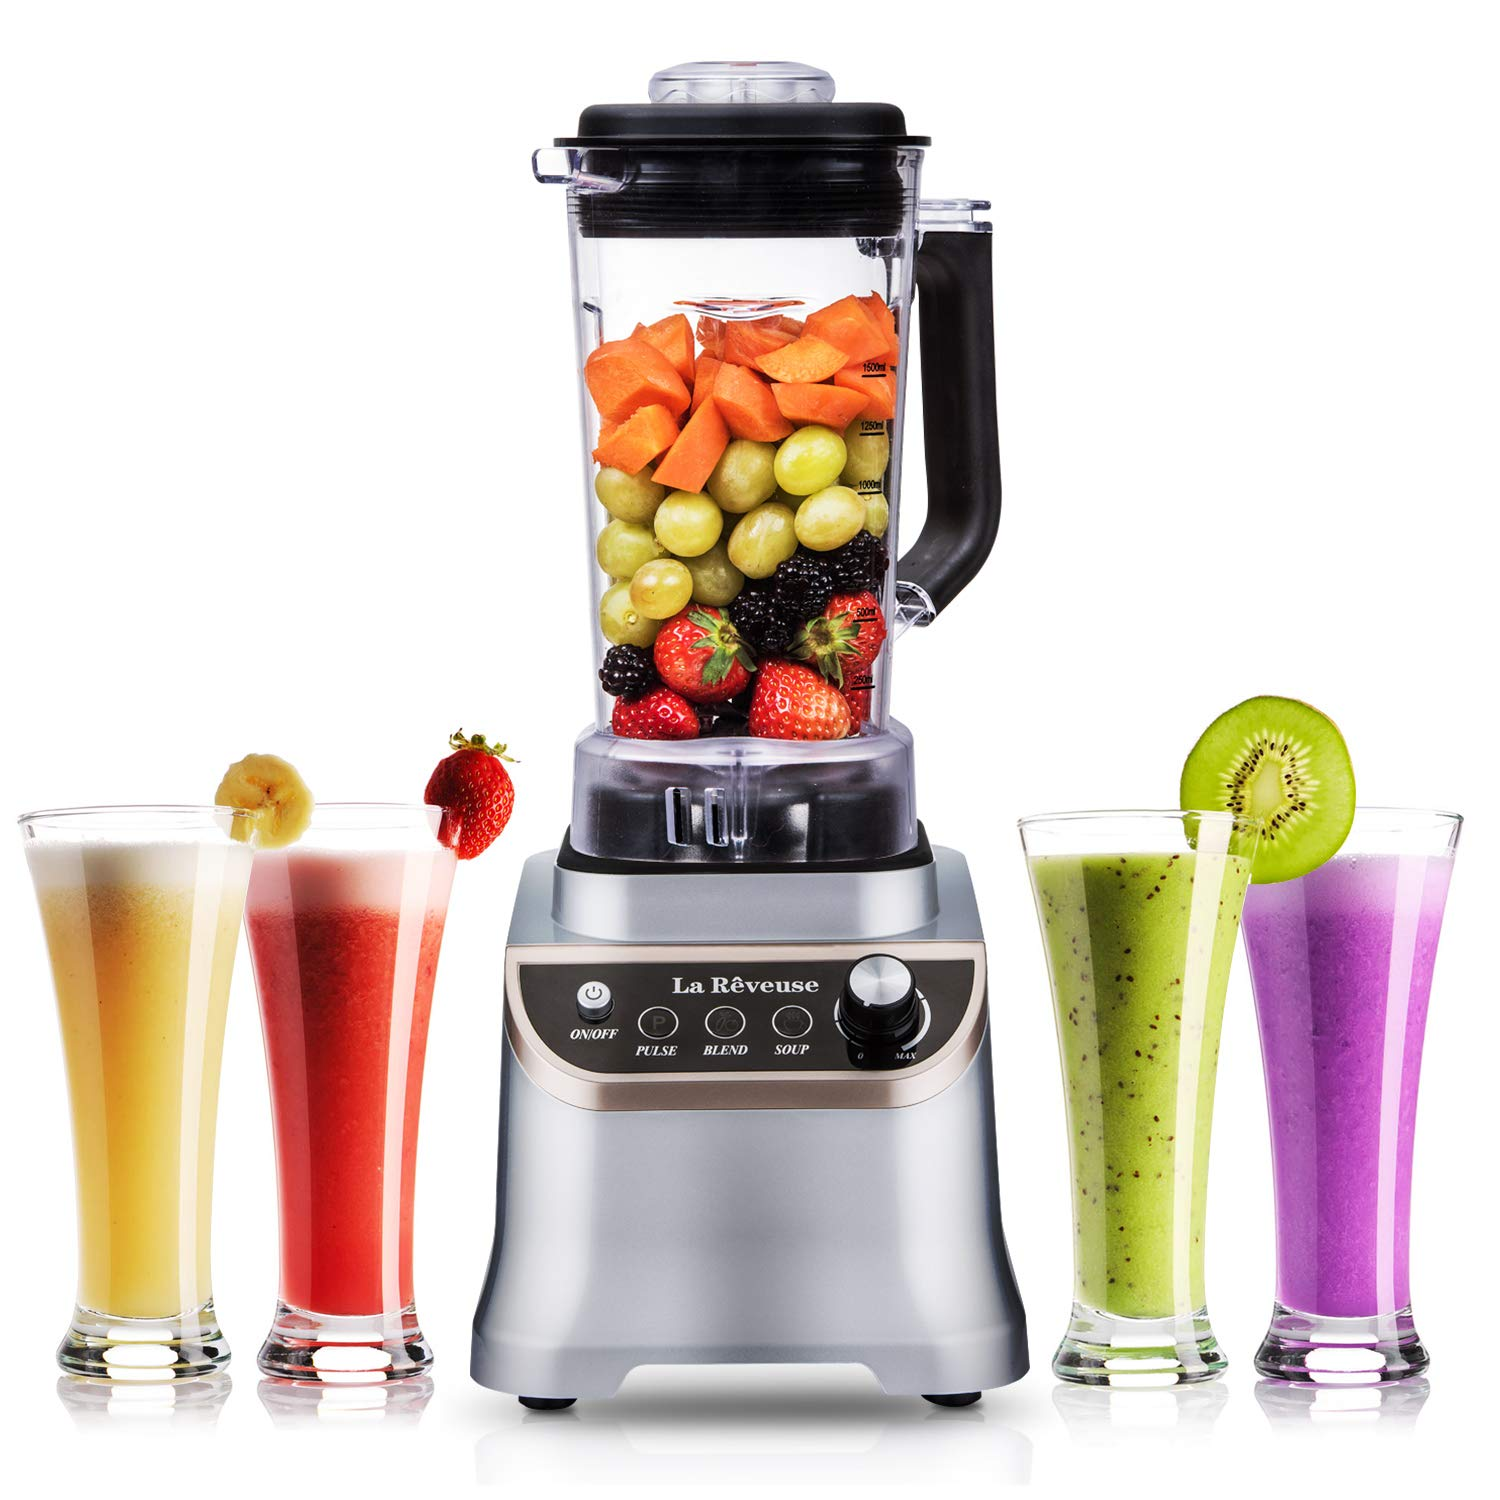 Professional Countertop High Speed Blender with 1200-Watt Base-51 oz BPA Free Jar for Frozen Drinks and Smoothies,Special Design for Entire Family